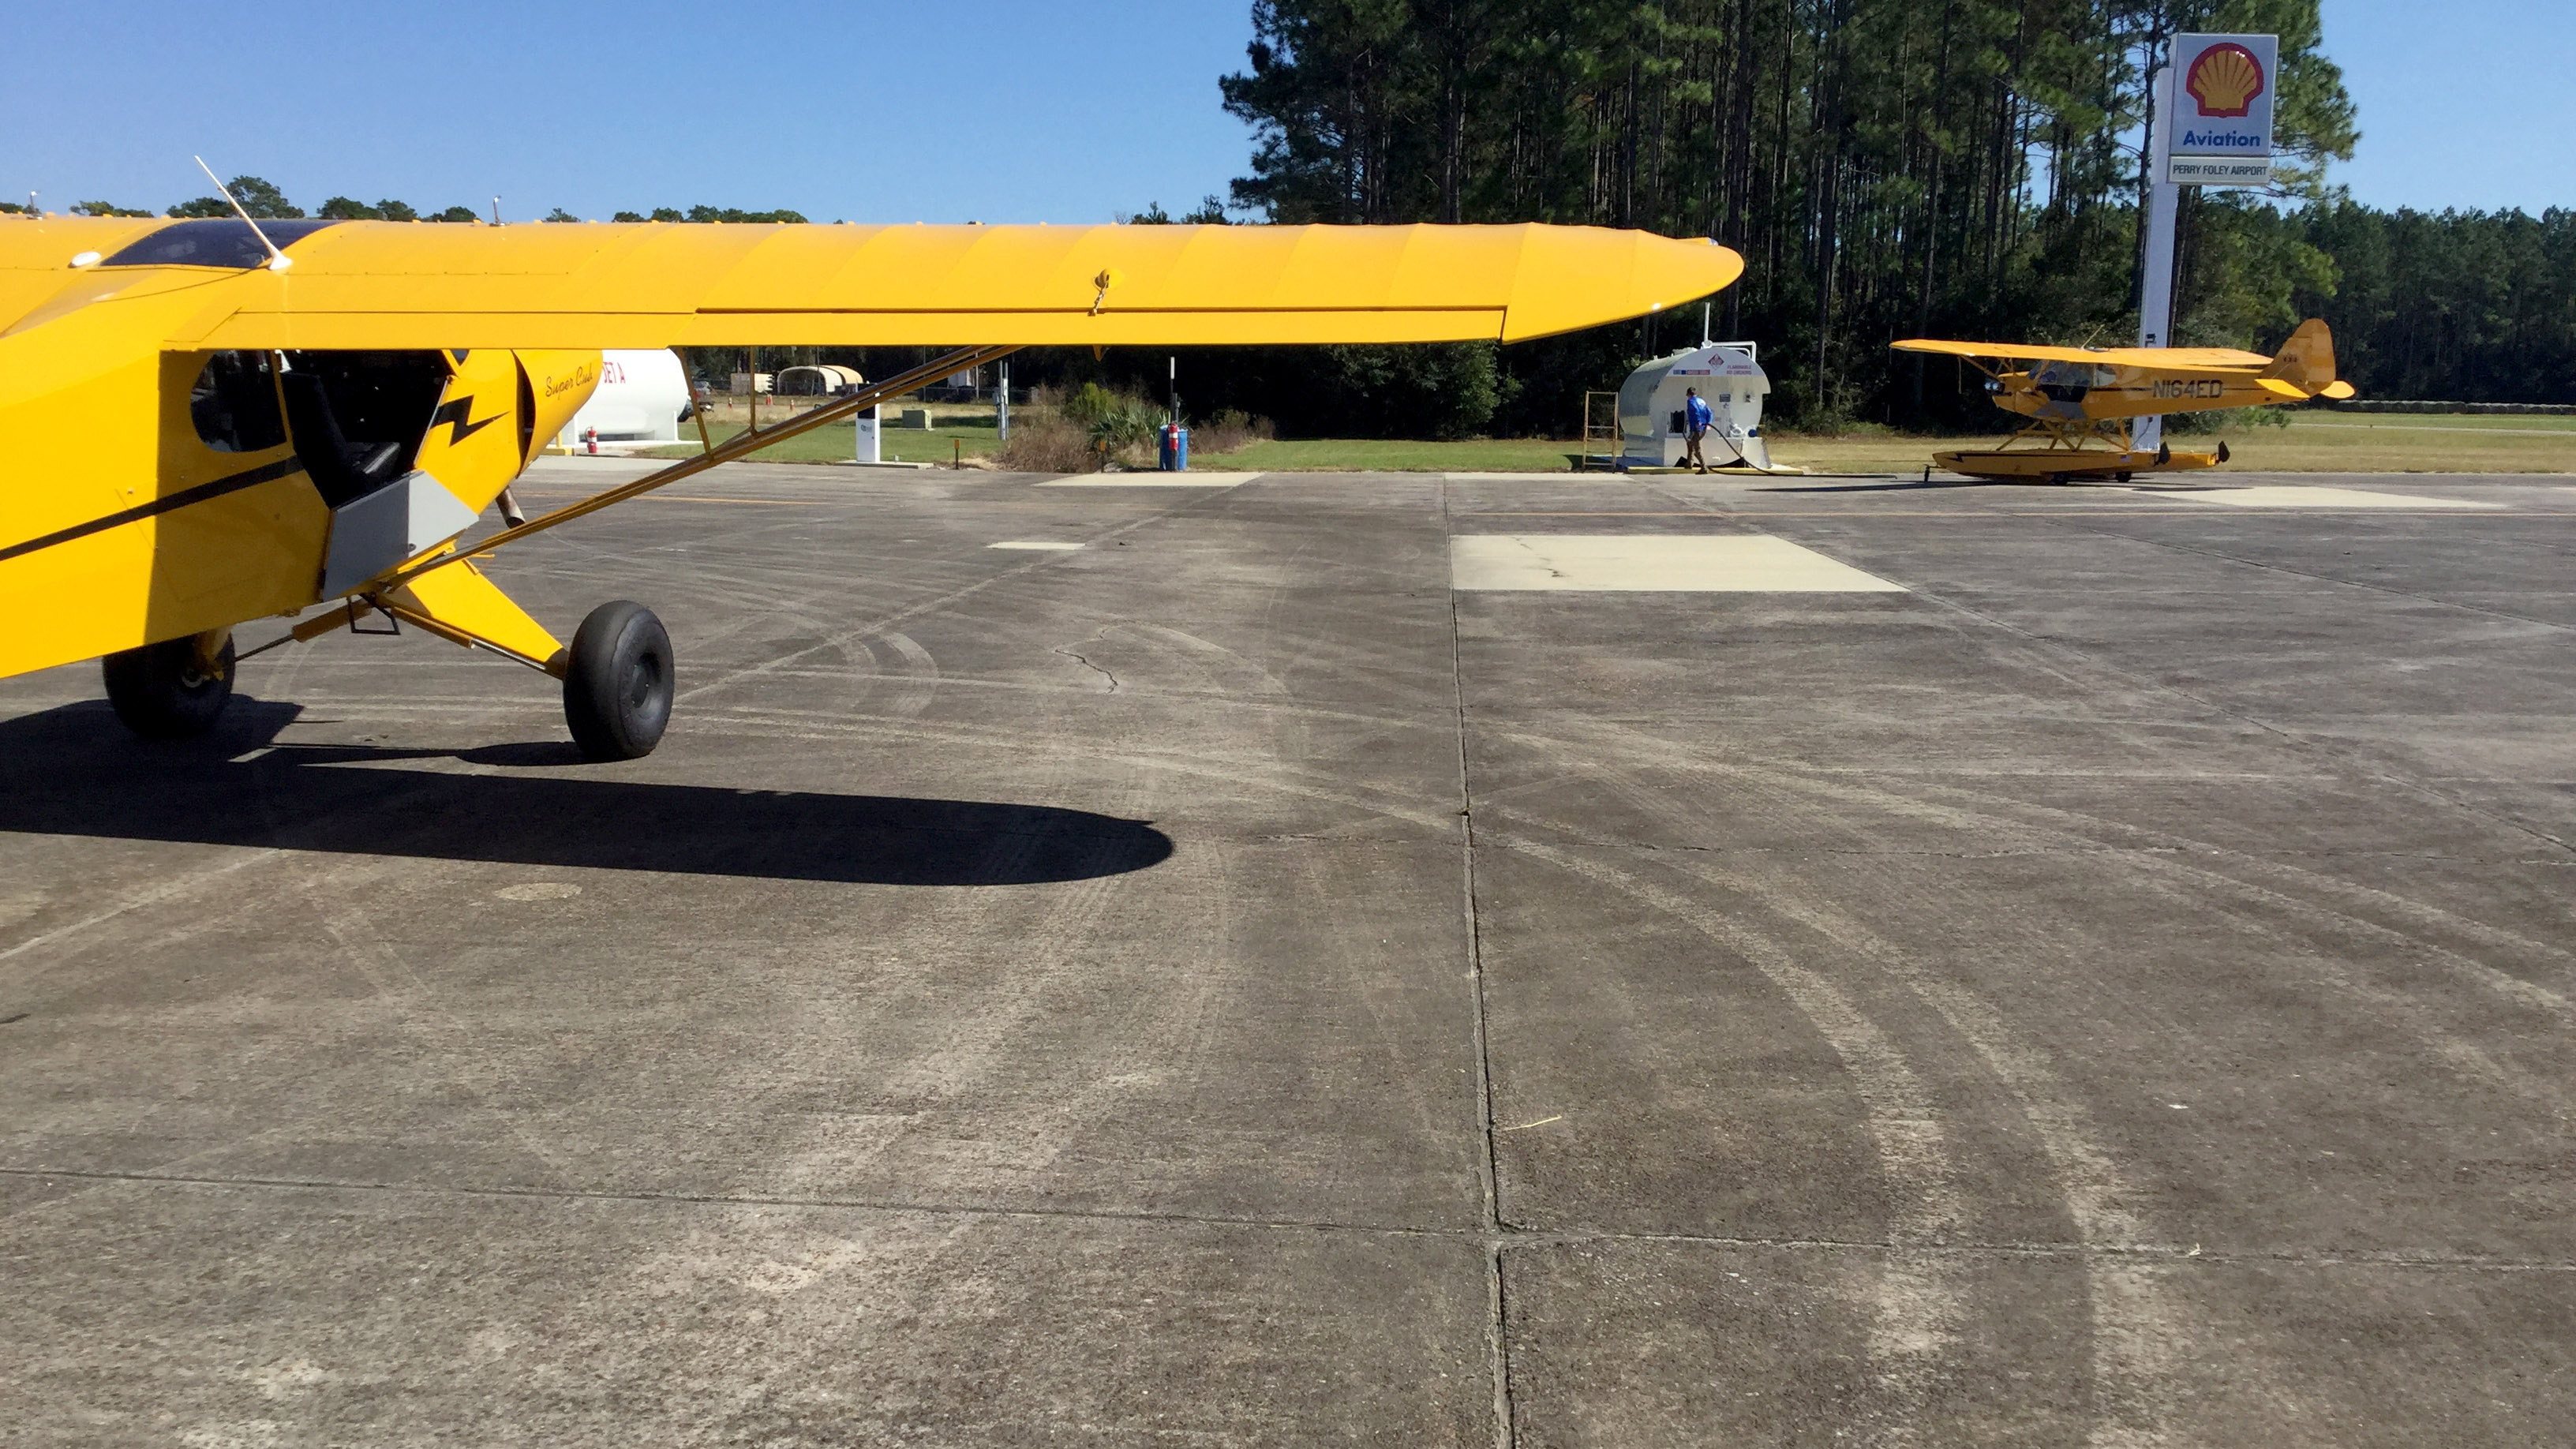 Cheap avgas at Perry-Foley Airport in Perry, Florida, attracts birds of a similar feather: The AOPA Sweepstakes Super Cub and a Cub on floats.